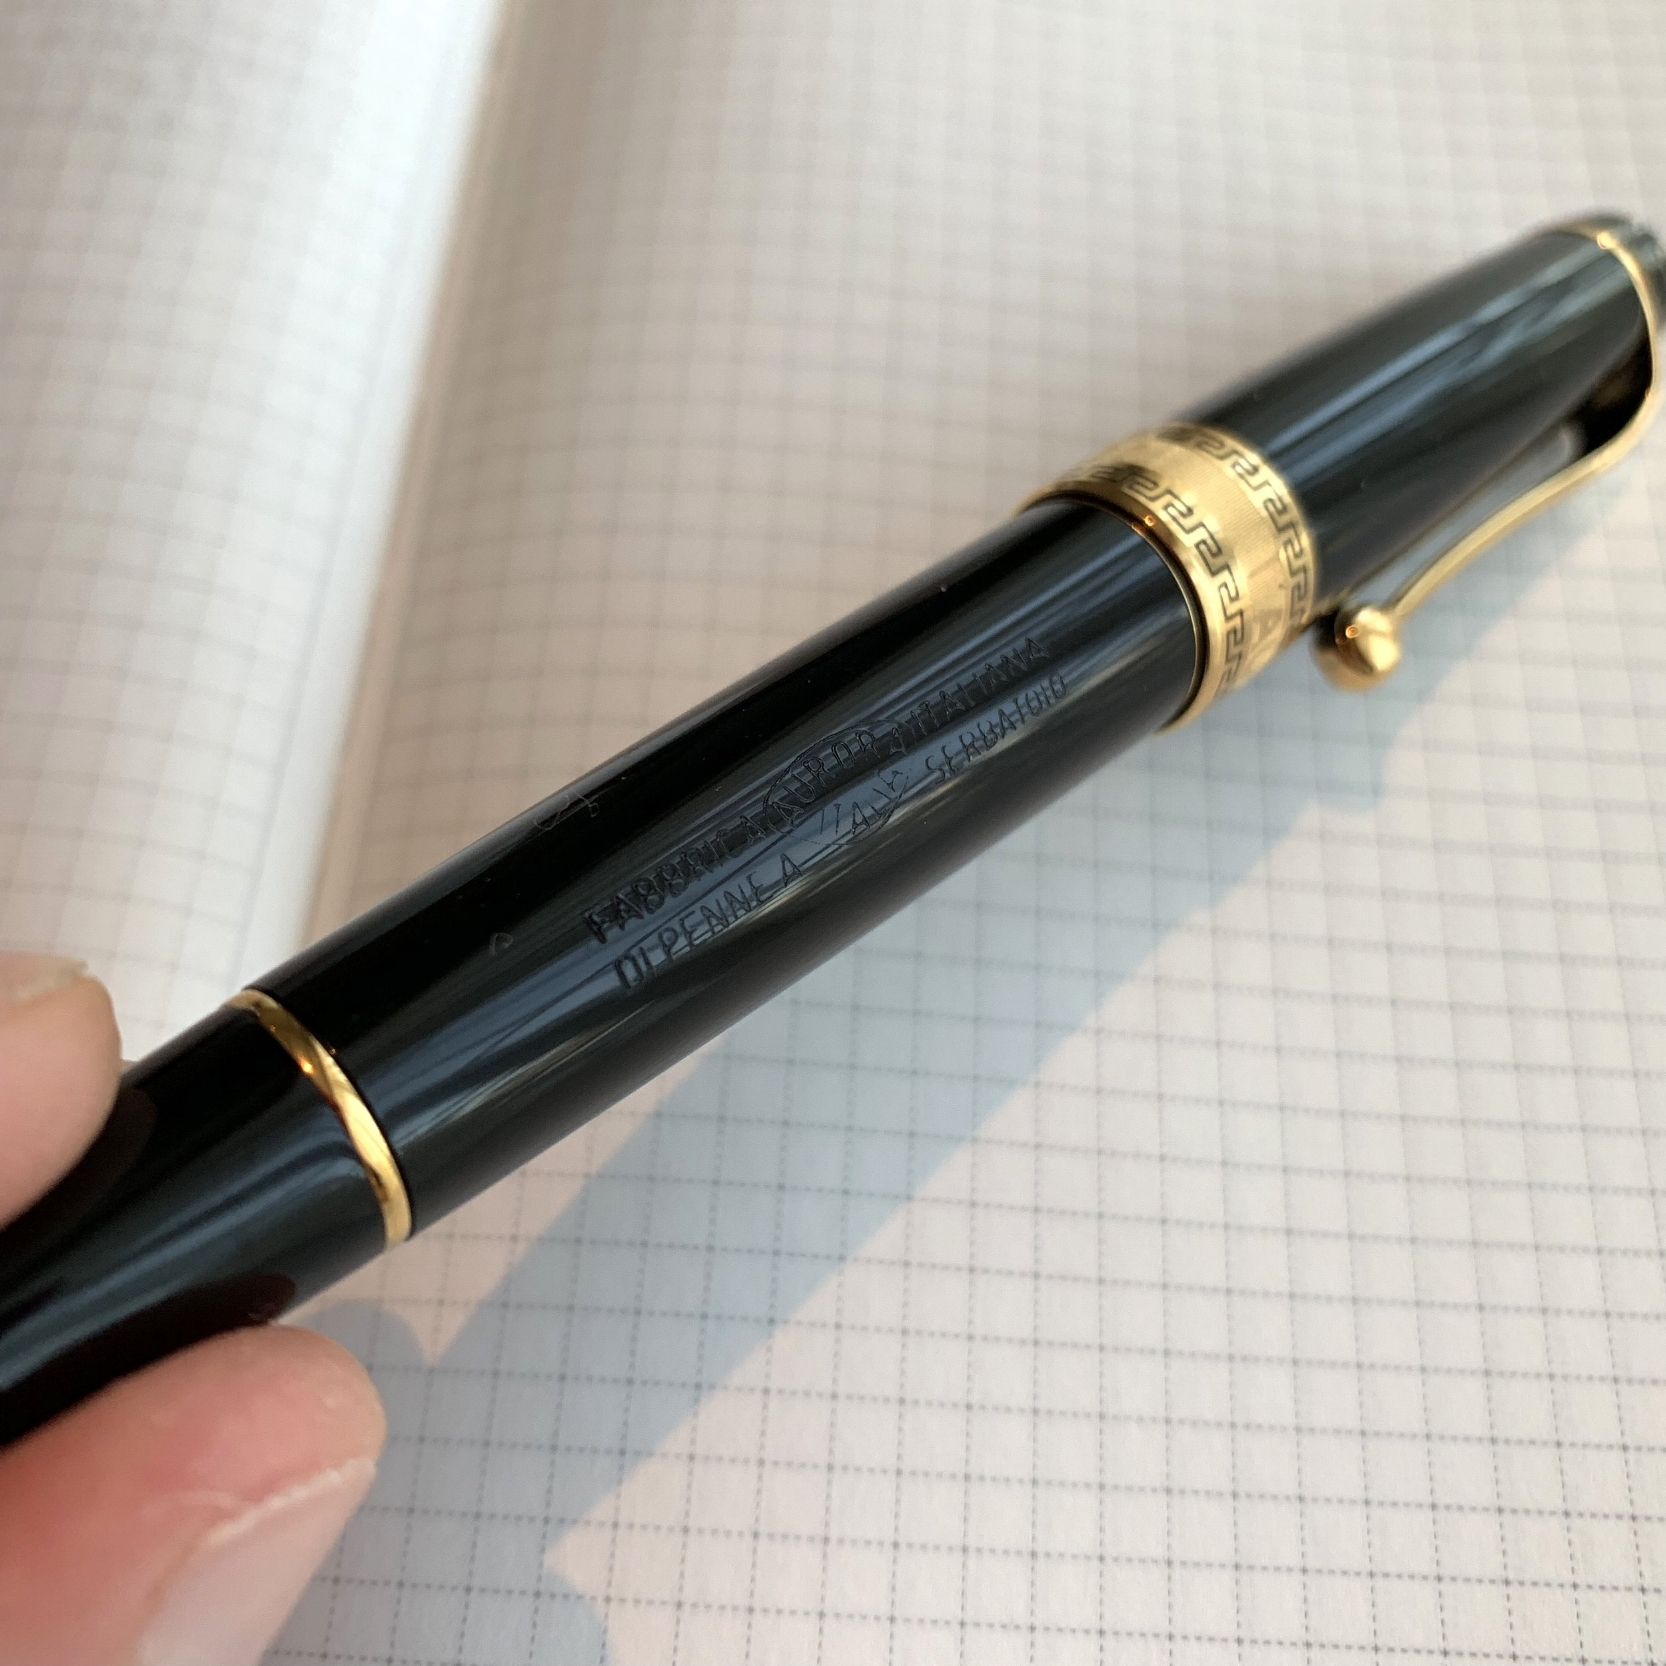 The vintage-style barrel engraving adds a touch of class to this pen, imho.